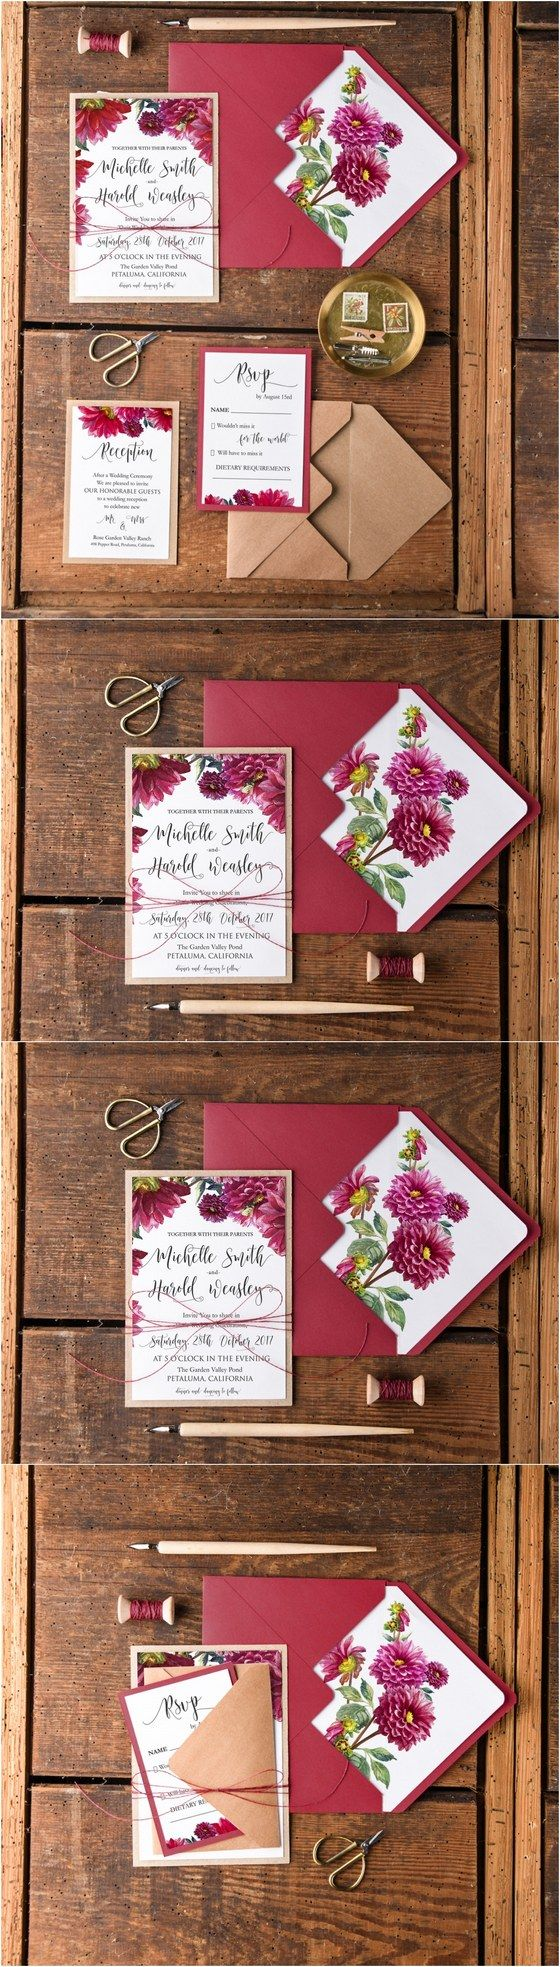 21 best Invitaciones ♡ images on Pinterest | Invitations, Wedding ...